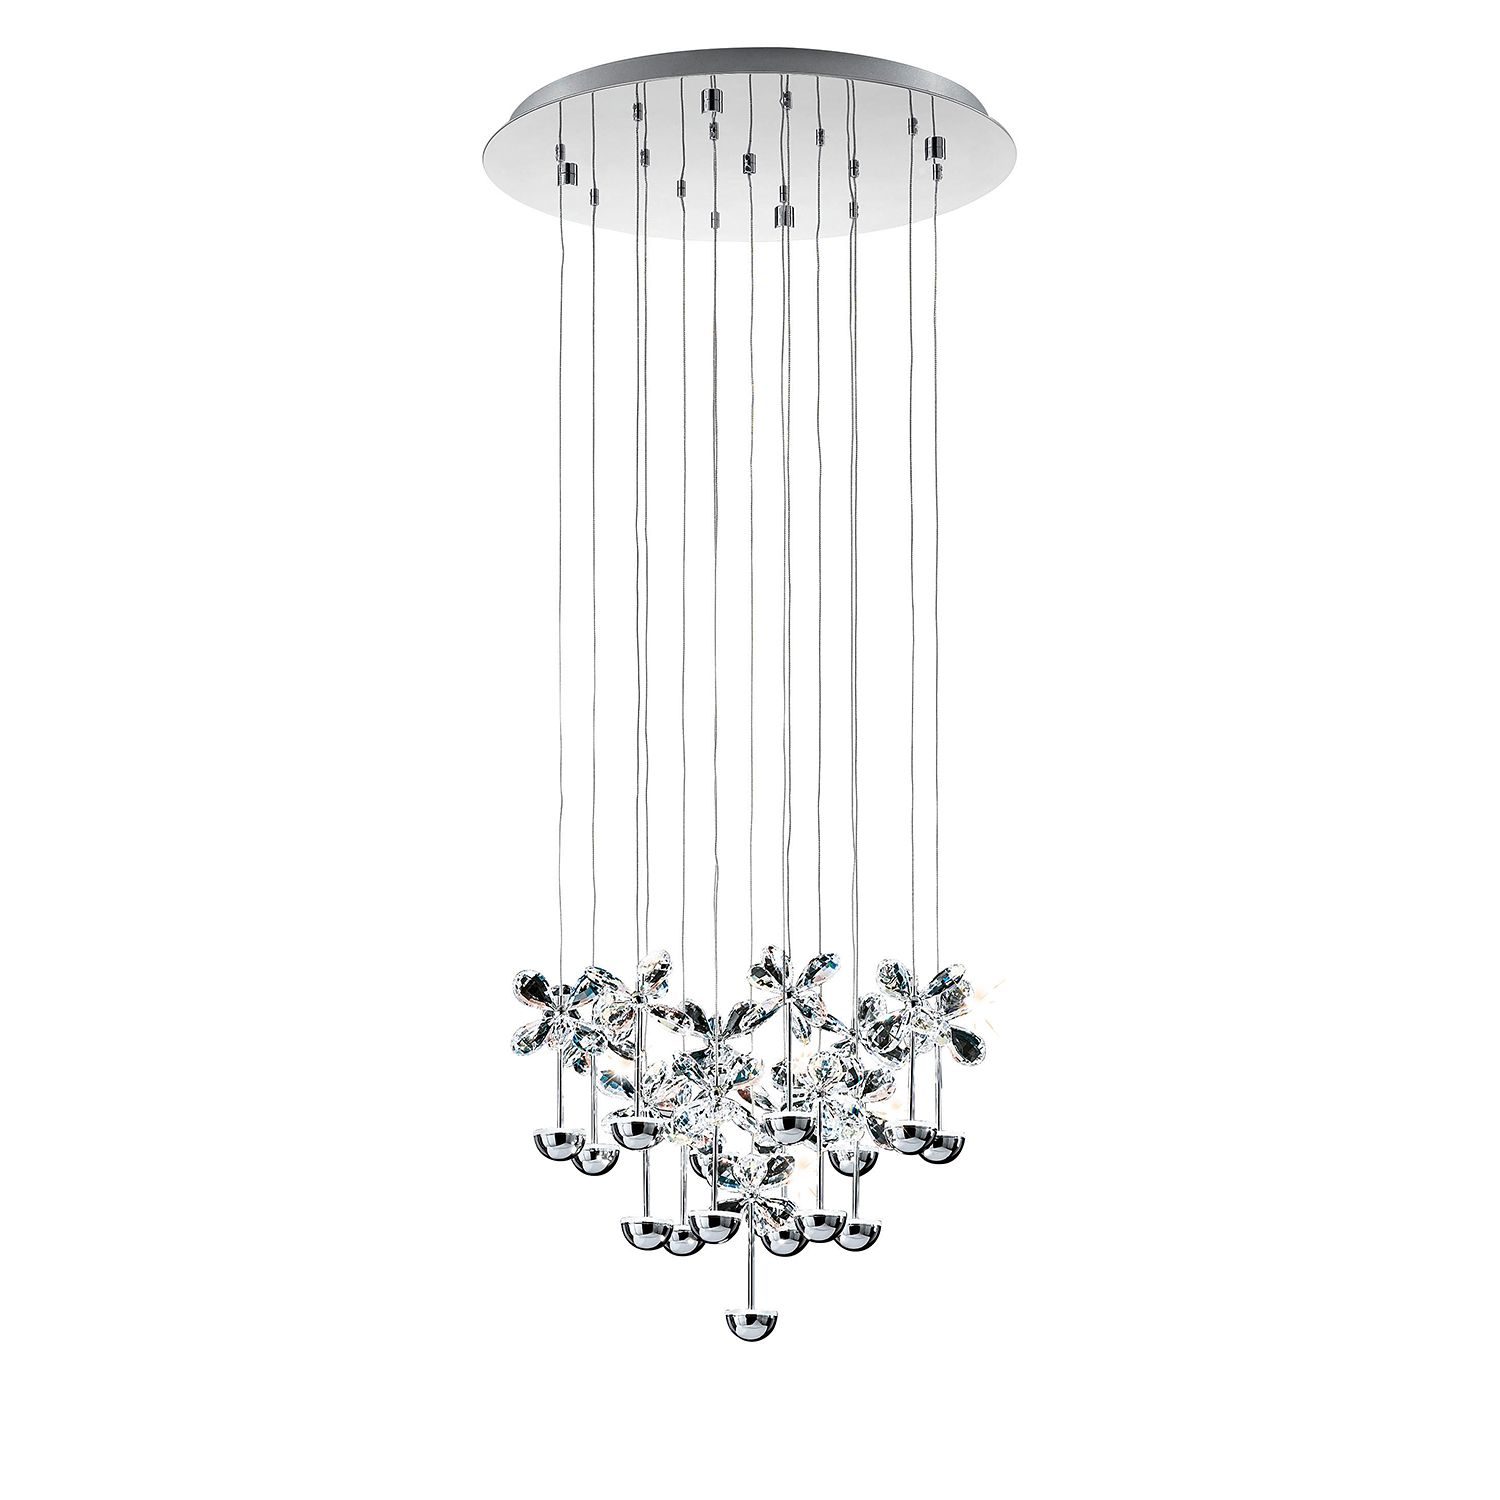 Suspension LED Pianopoli